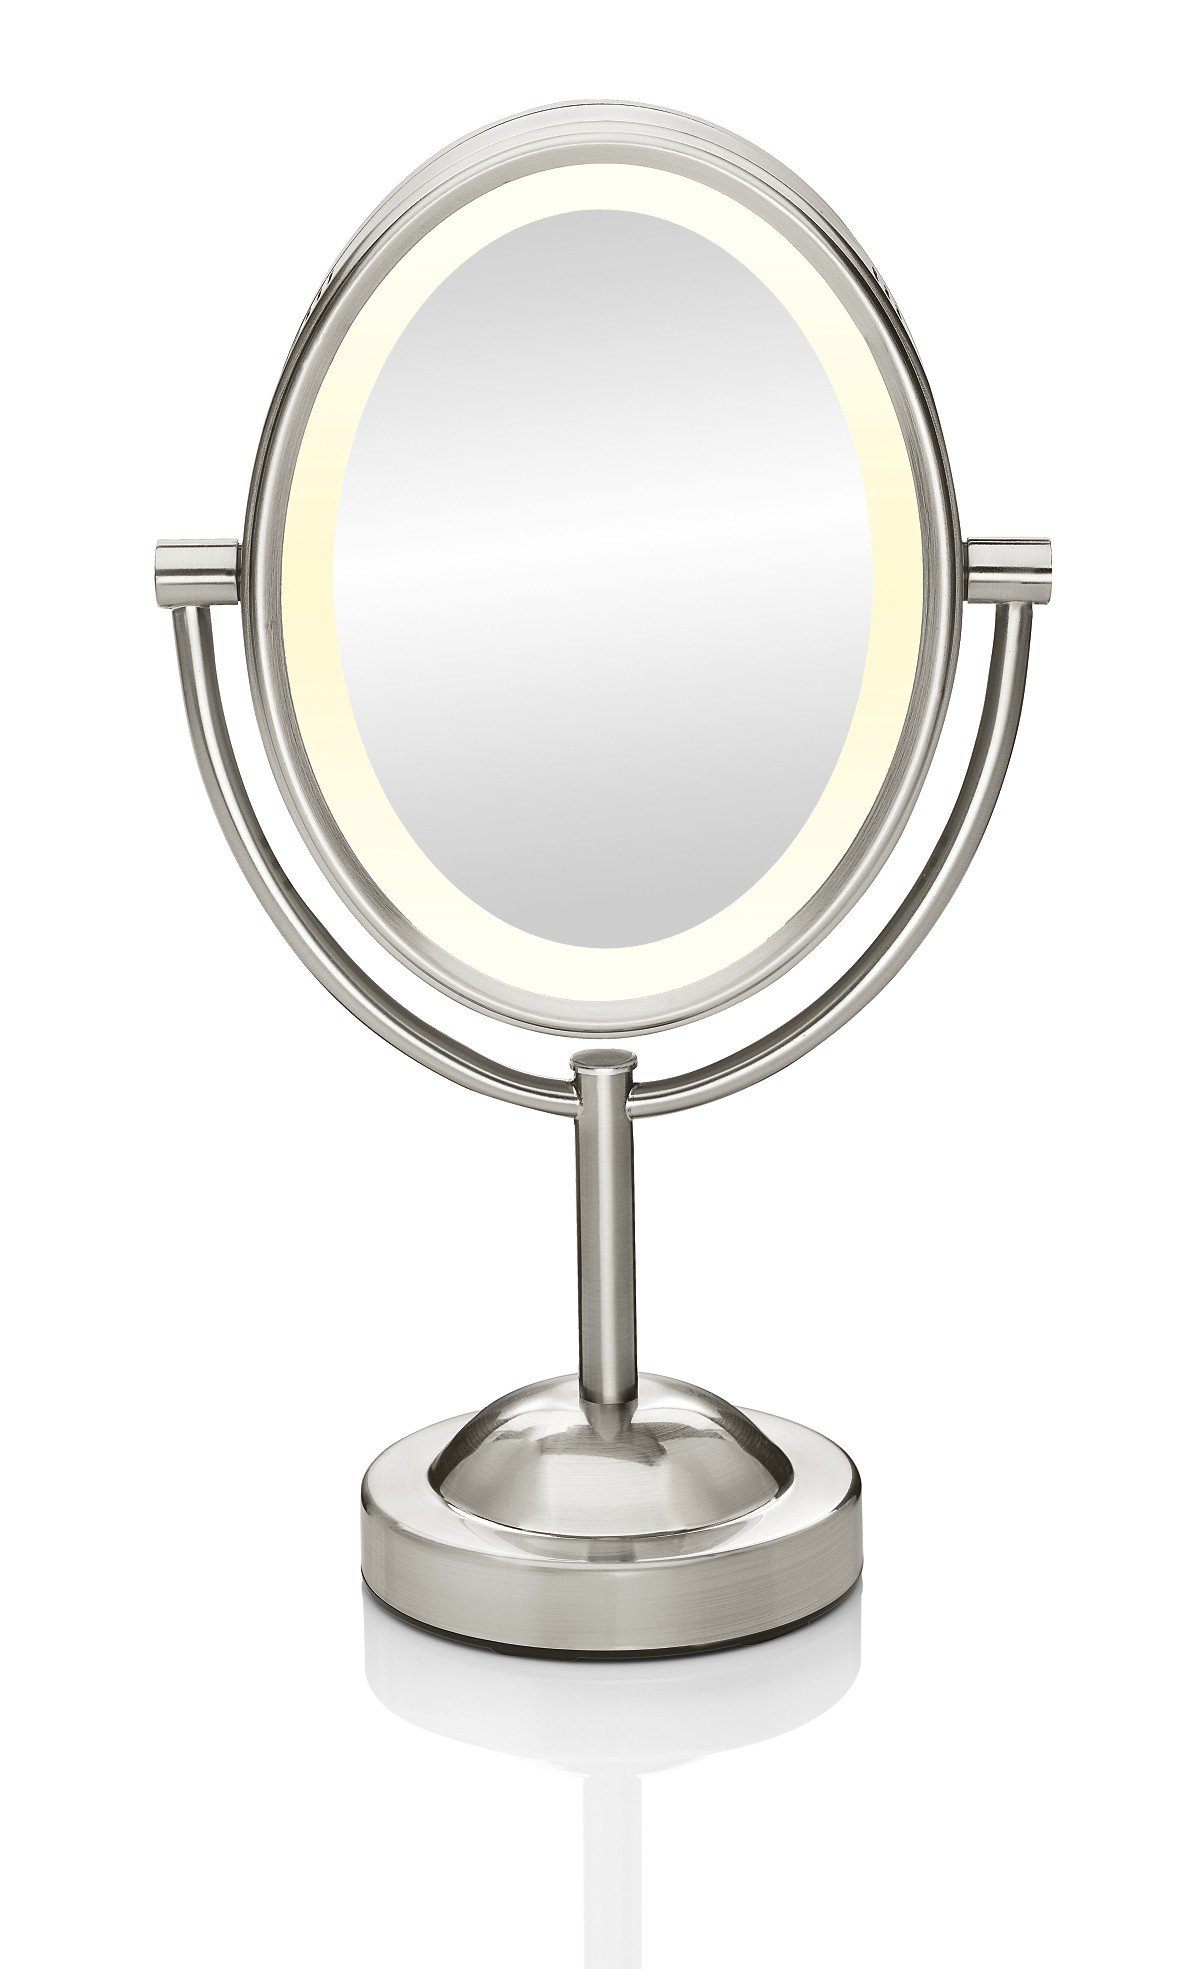 Conair Oval Shaped Double-Sided Lighted Makeup Mirror, 1x/7x magnification, Satin Nickel Finish by Conair